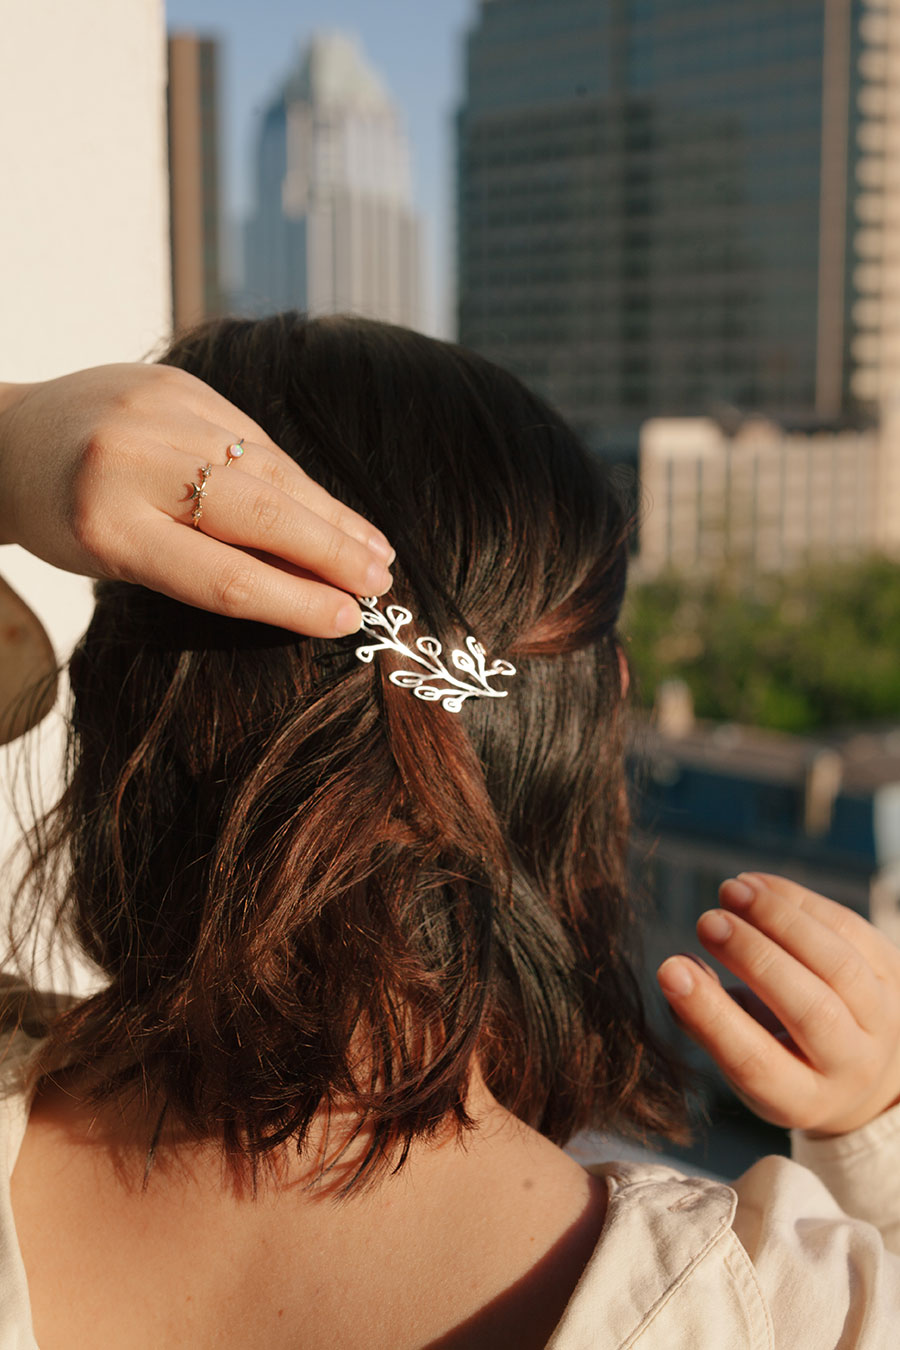 Prima hairclips for Dandy Ona Jewelry shot by Ralph Mendoza